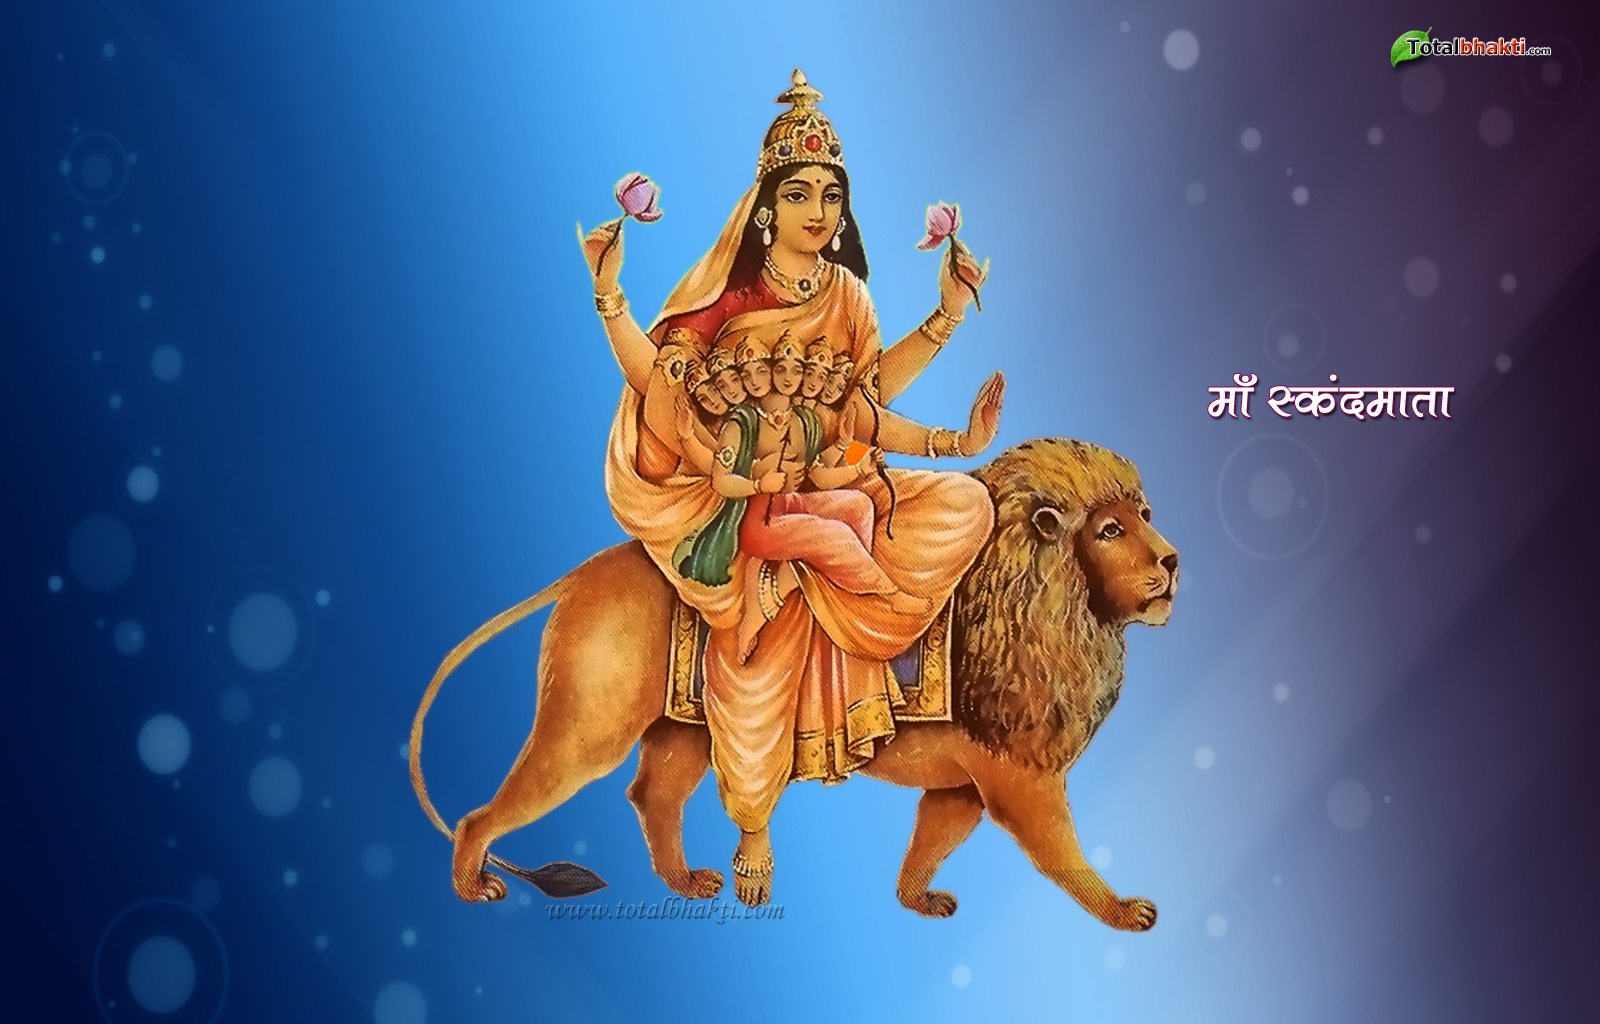 BHARAT DARSHAN - DEVI NAVRATRI - GOD AS MALE AND FEMALE. GODDESS OF FIFTH DAY OR PANCHAMI IS KNOWN AS SKANDAMATA, MOTHER OF SKANDA OR KARTIKEYA.